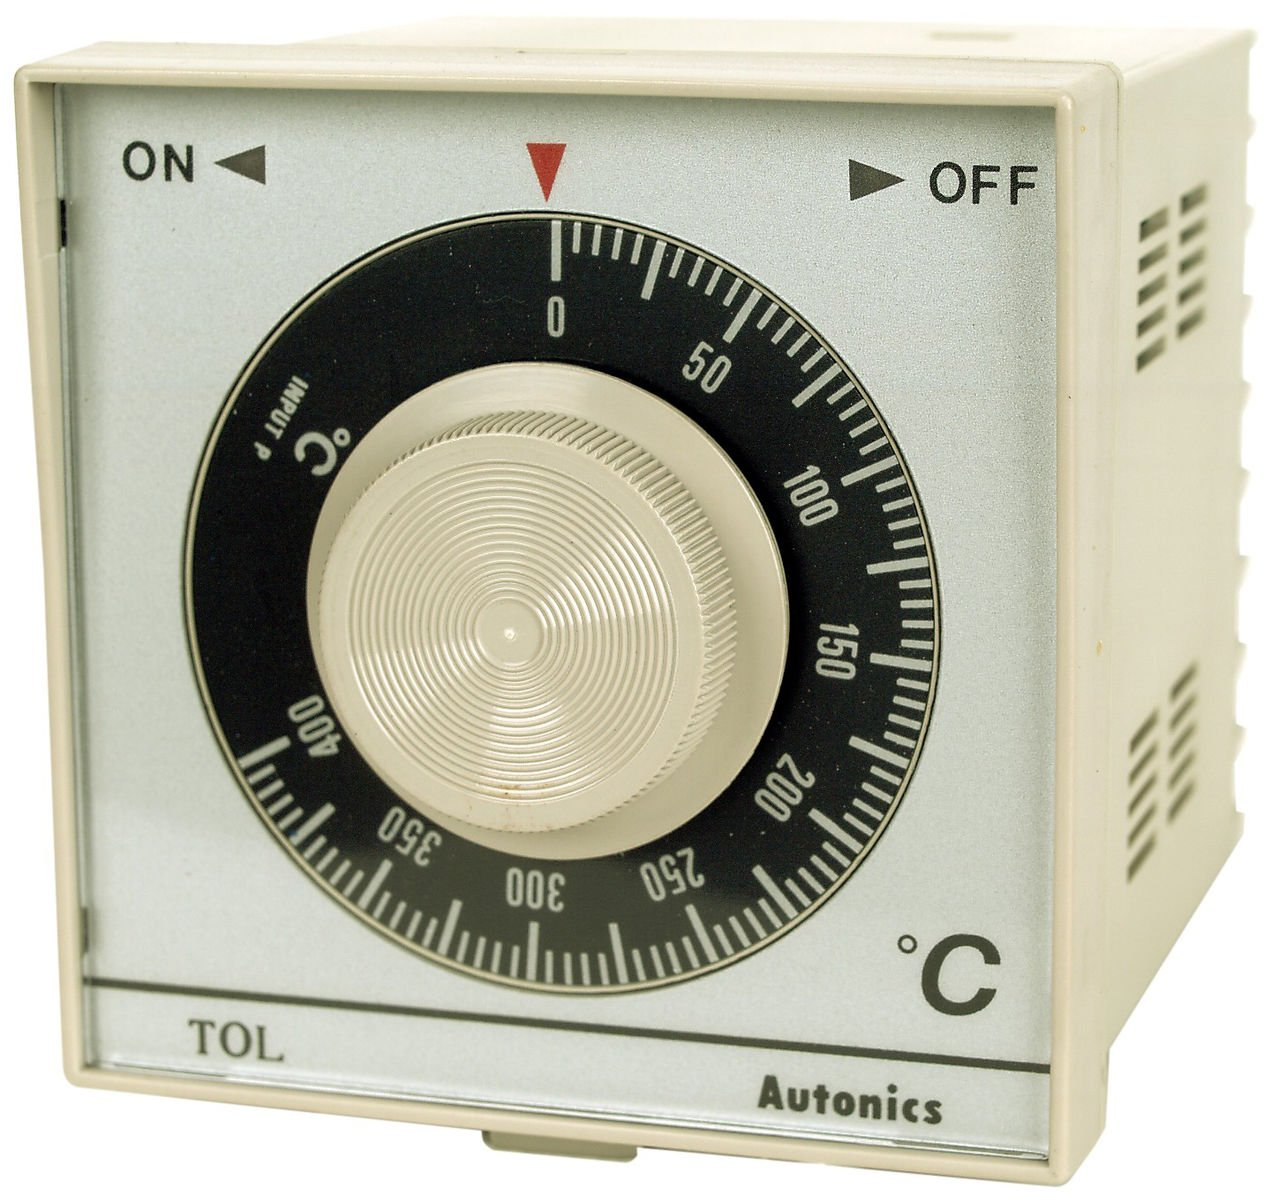 Autonics TOL-F3RK1C Temp Control, 1/4 DIN, Analog, On/Off, Relay Output, K Thermocouple, 100 C, 110 & 220 VAC by Autonics USA, Inc